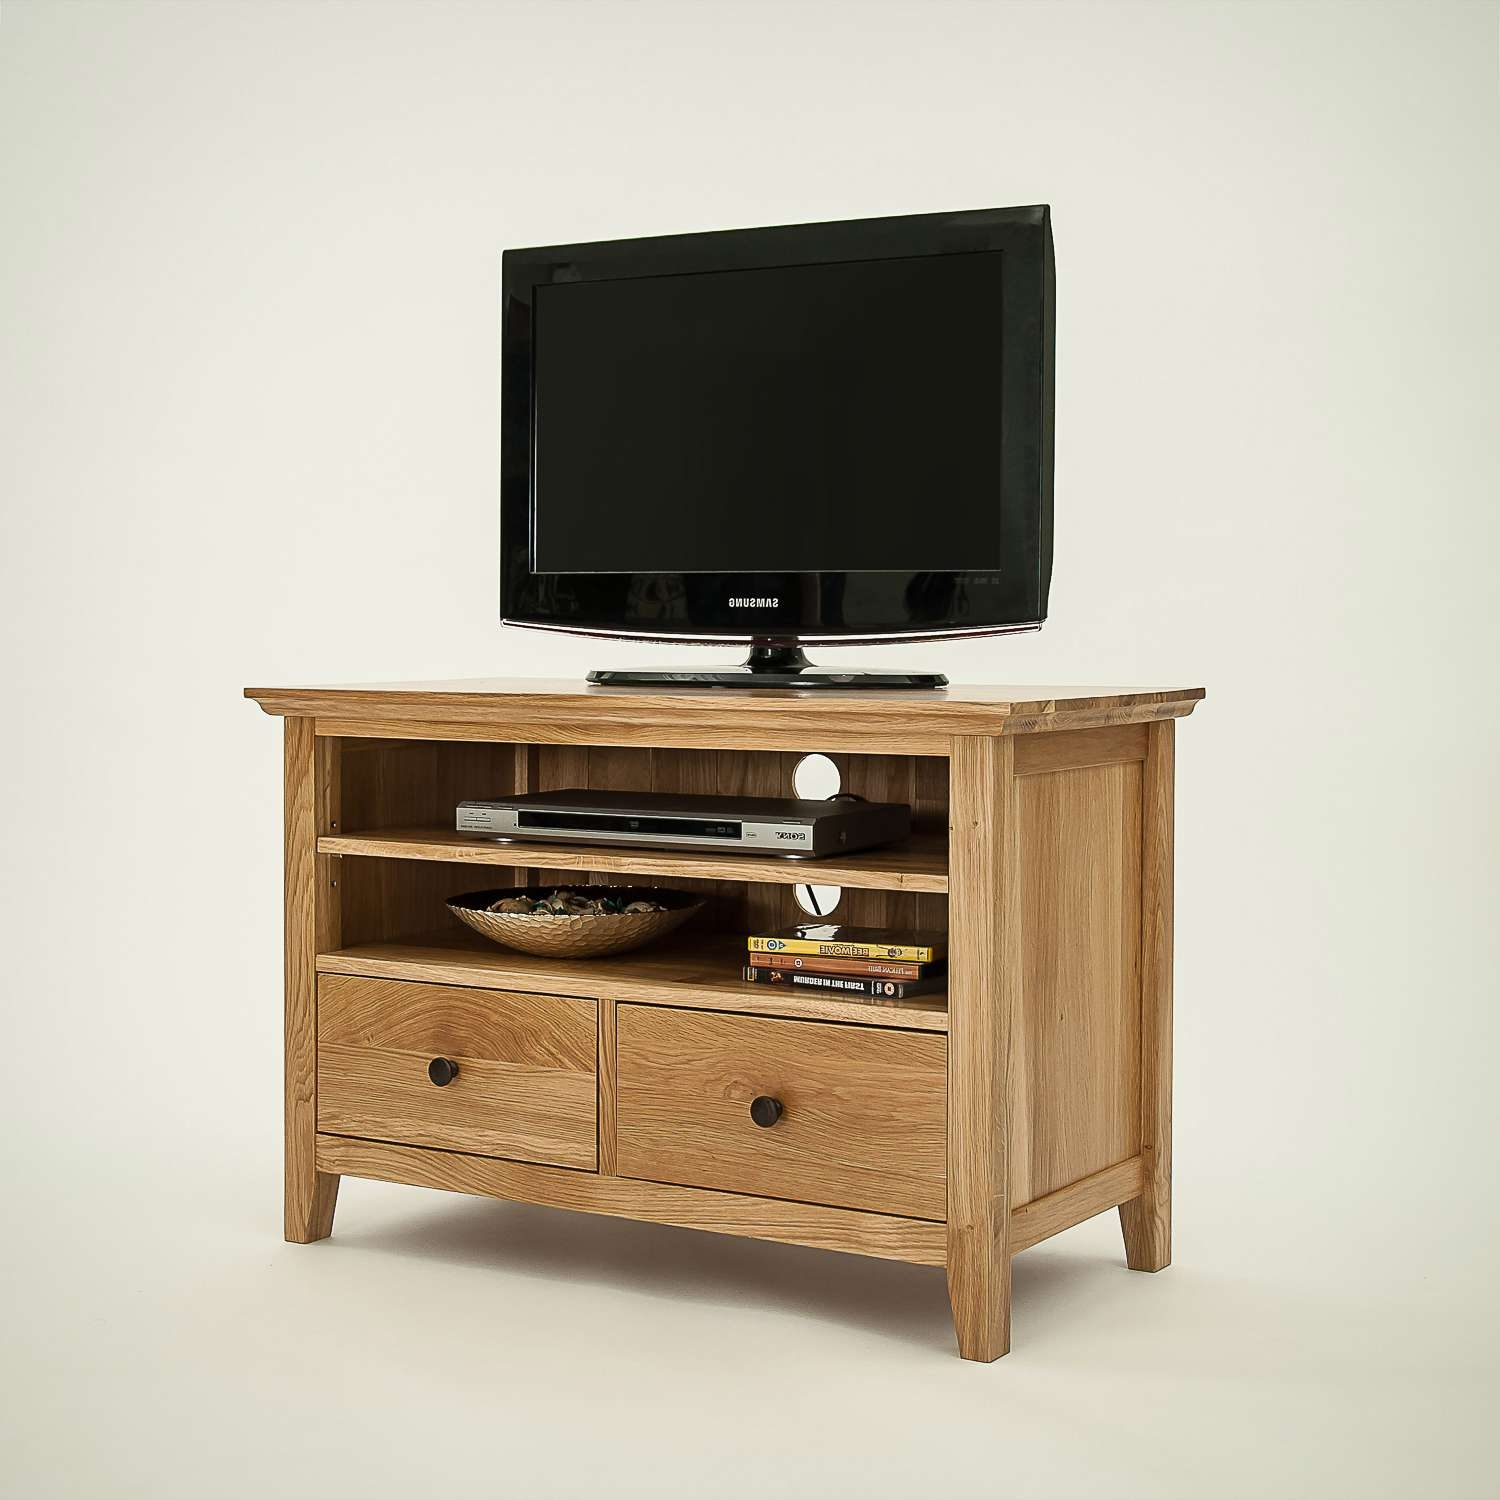 Artisan Rustic Oak Small Tv Cabinet | Hampshire Furniture Throughout Oak Tv  Cabinets (View 1